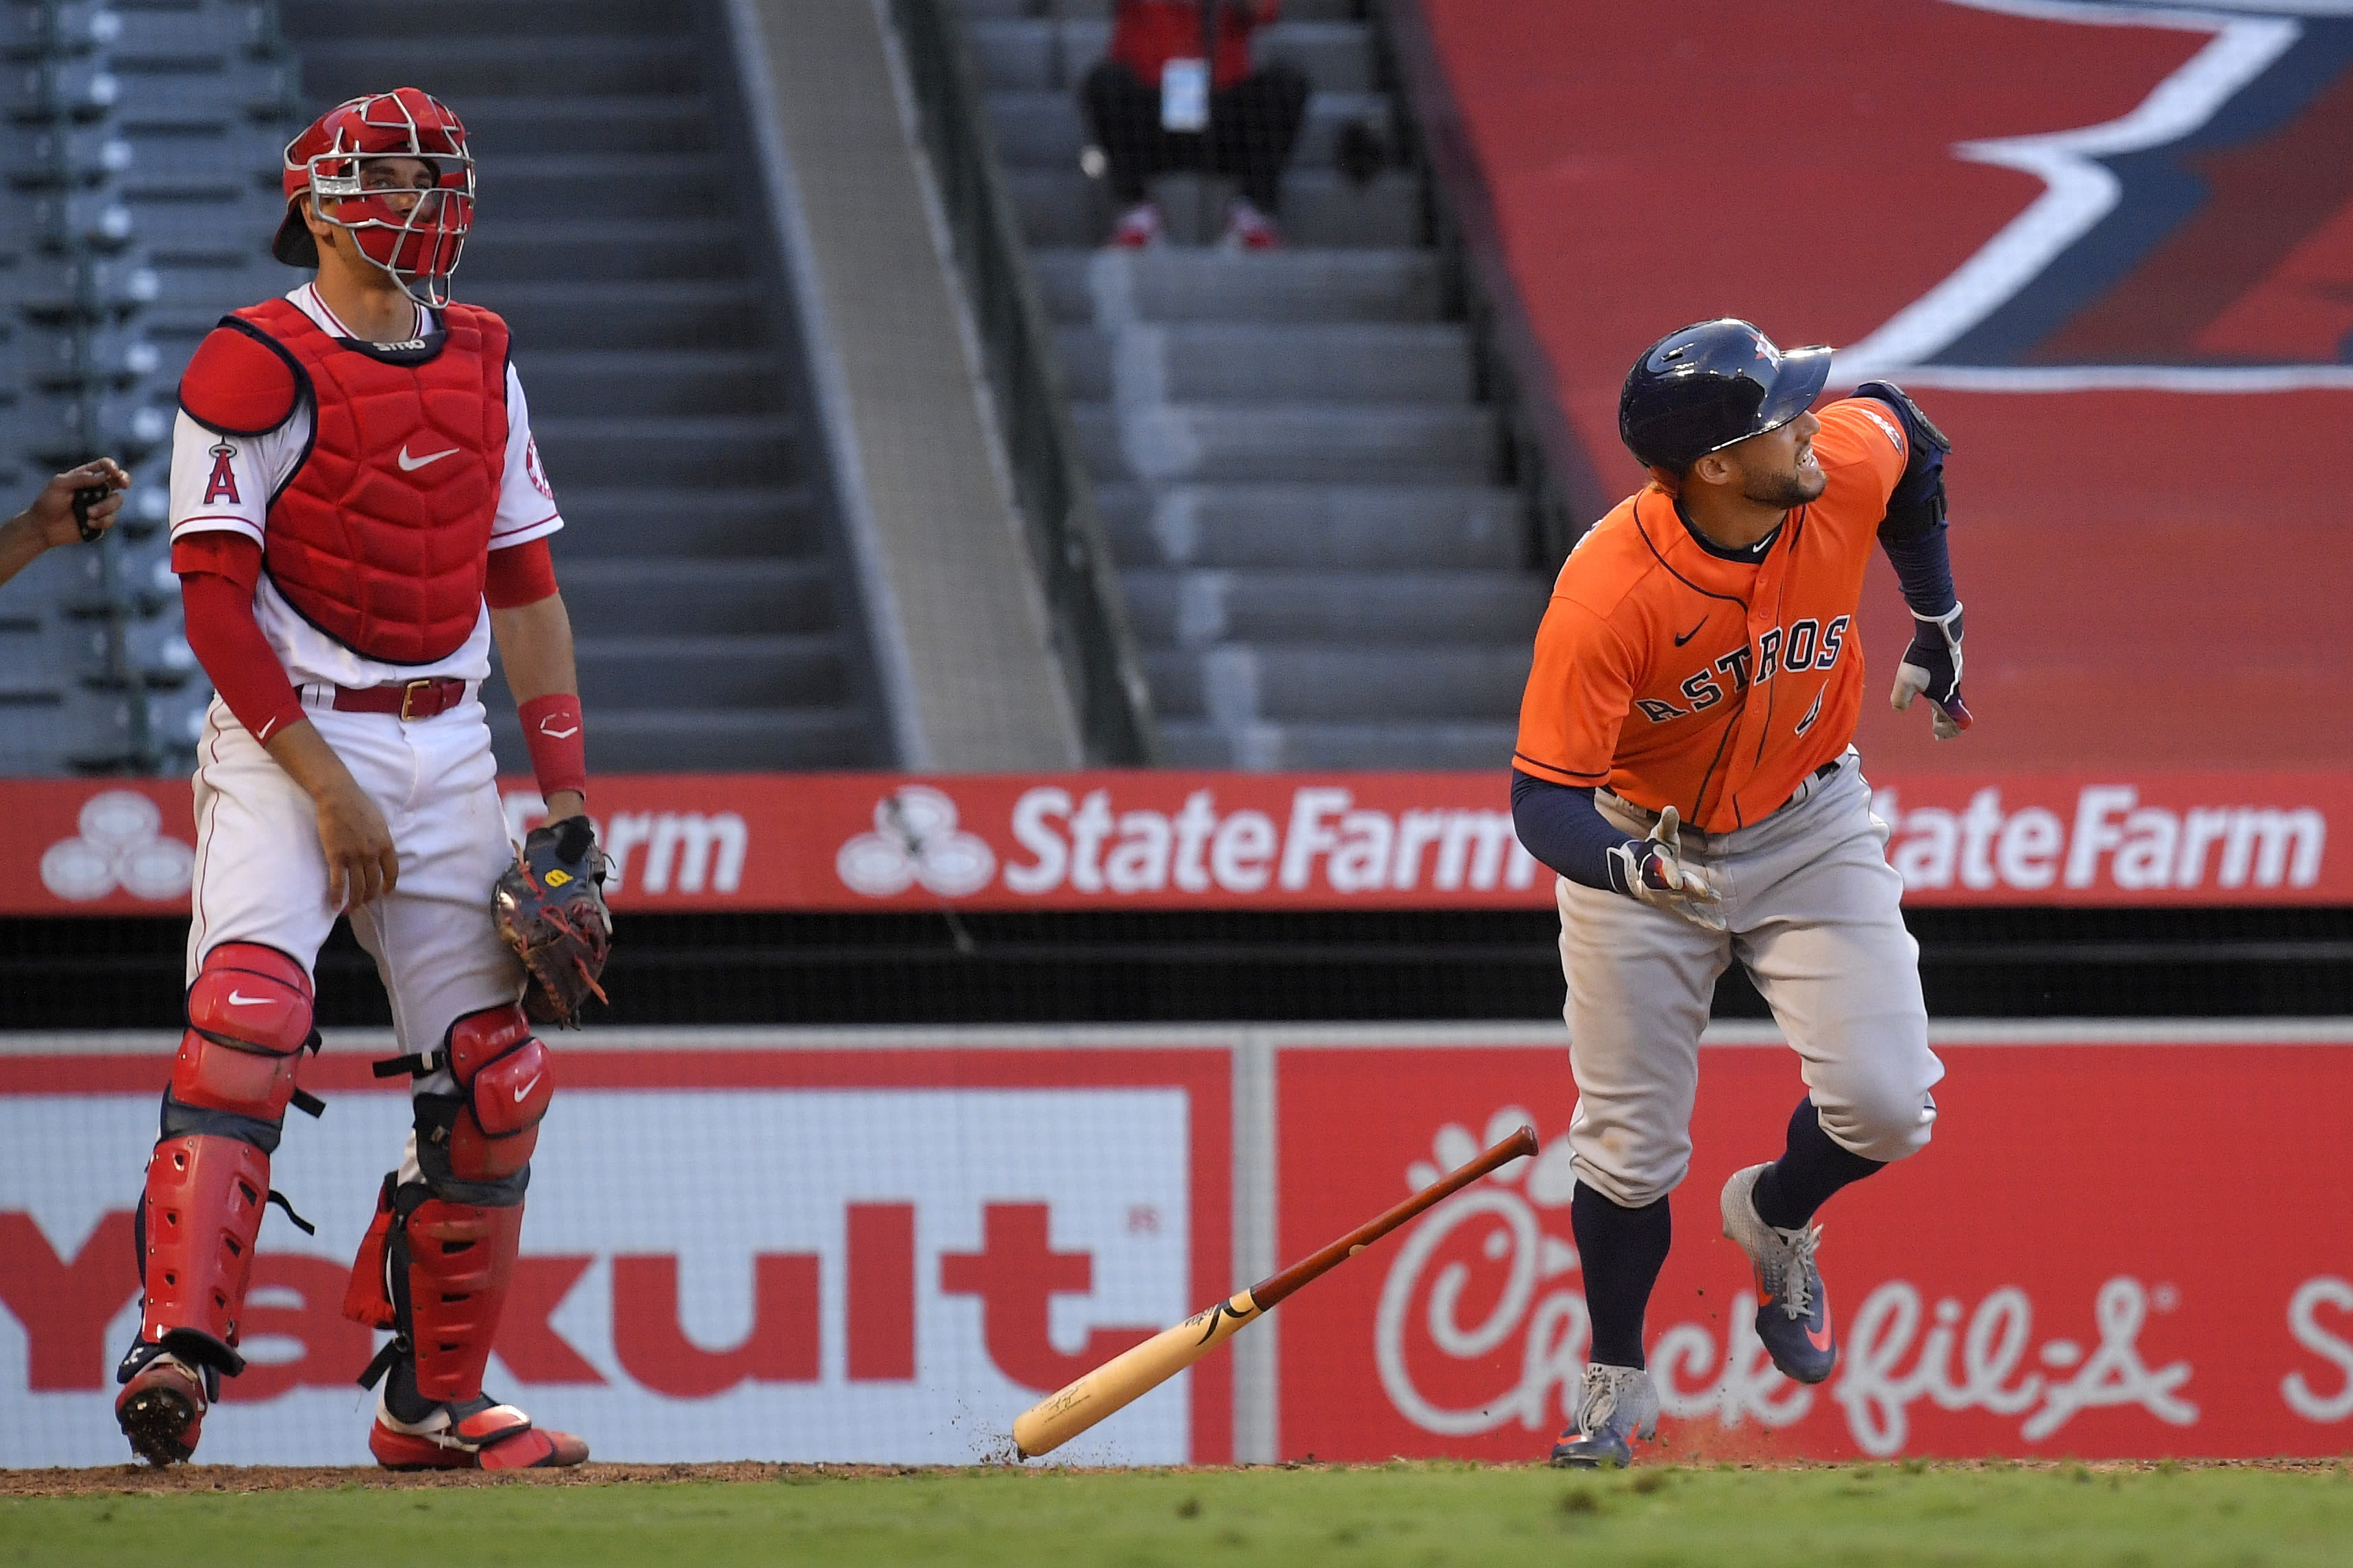 Houston Astros' George Springer runs to first after hitting a two-run home run, next to Los Angeles Angels catcher Max Stassi during the ninth inning of a baseball game Saturday, Aug. 1, 2020, in Anaheim, Calif. (AP Photo/Mark J. Terrill)